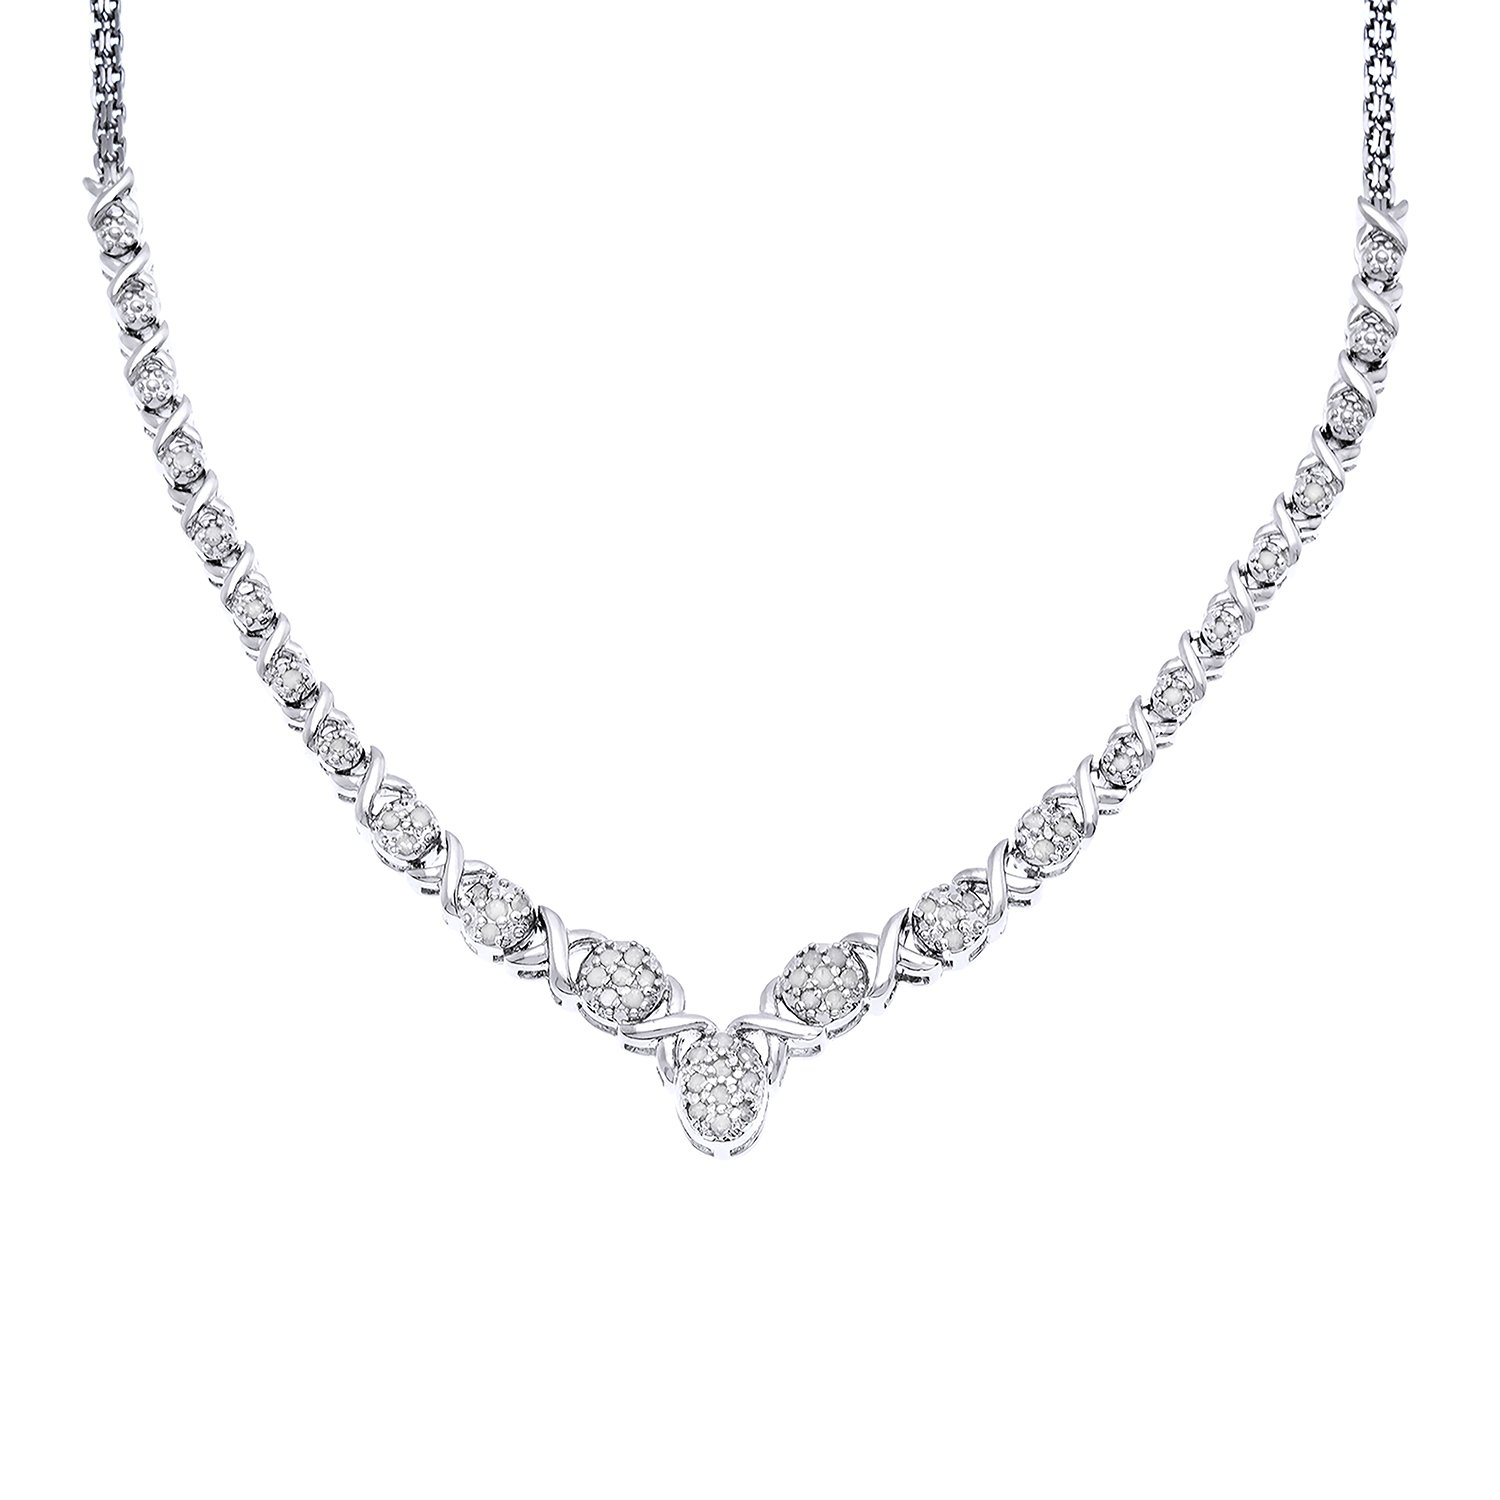 JewelExclusive Sterling Silver 1/2cttw Natural Round-Cut Diamond (J-K Color, I2-I3 Clarity) Oval X/O Necklace, 17''